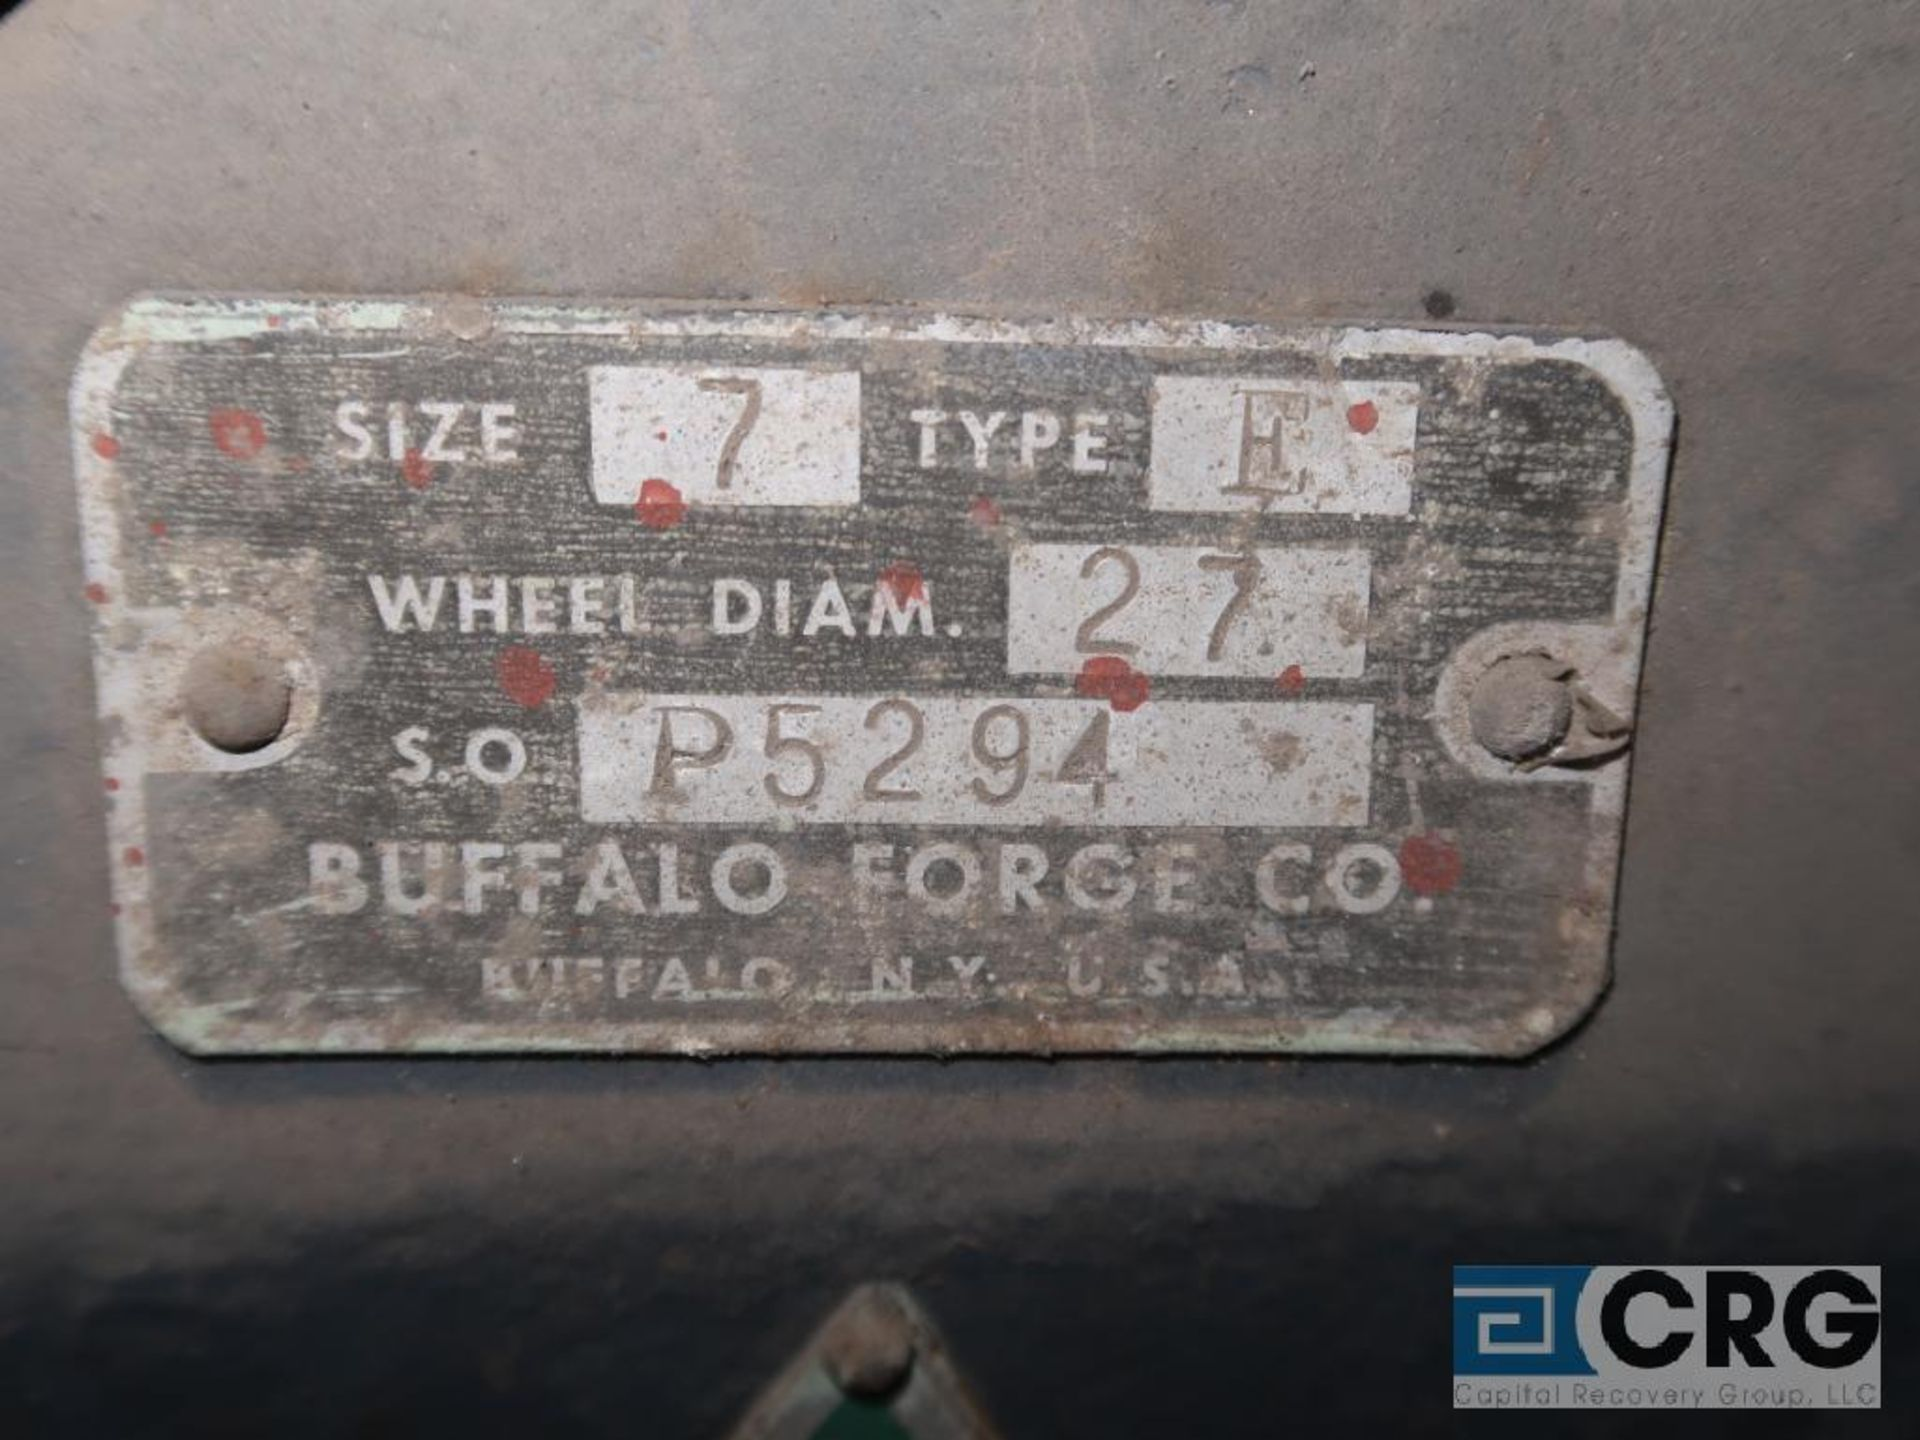 Buffalo H blower unit with 75 HP motor, s/n 5294 (Next Bay Cage Area) - Image 2 of 2